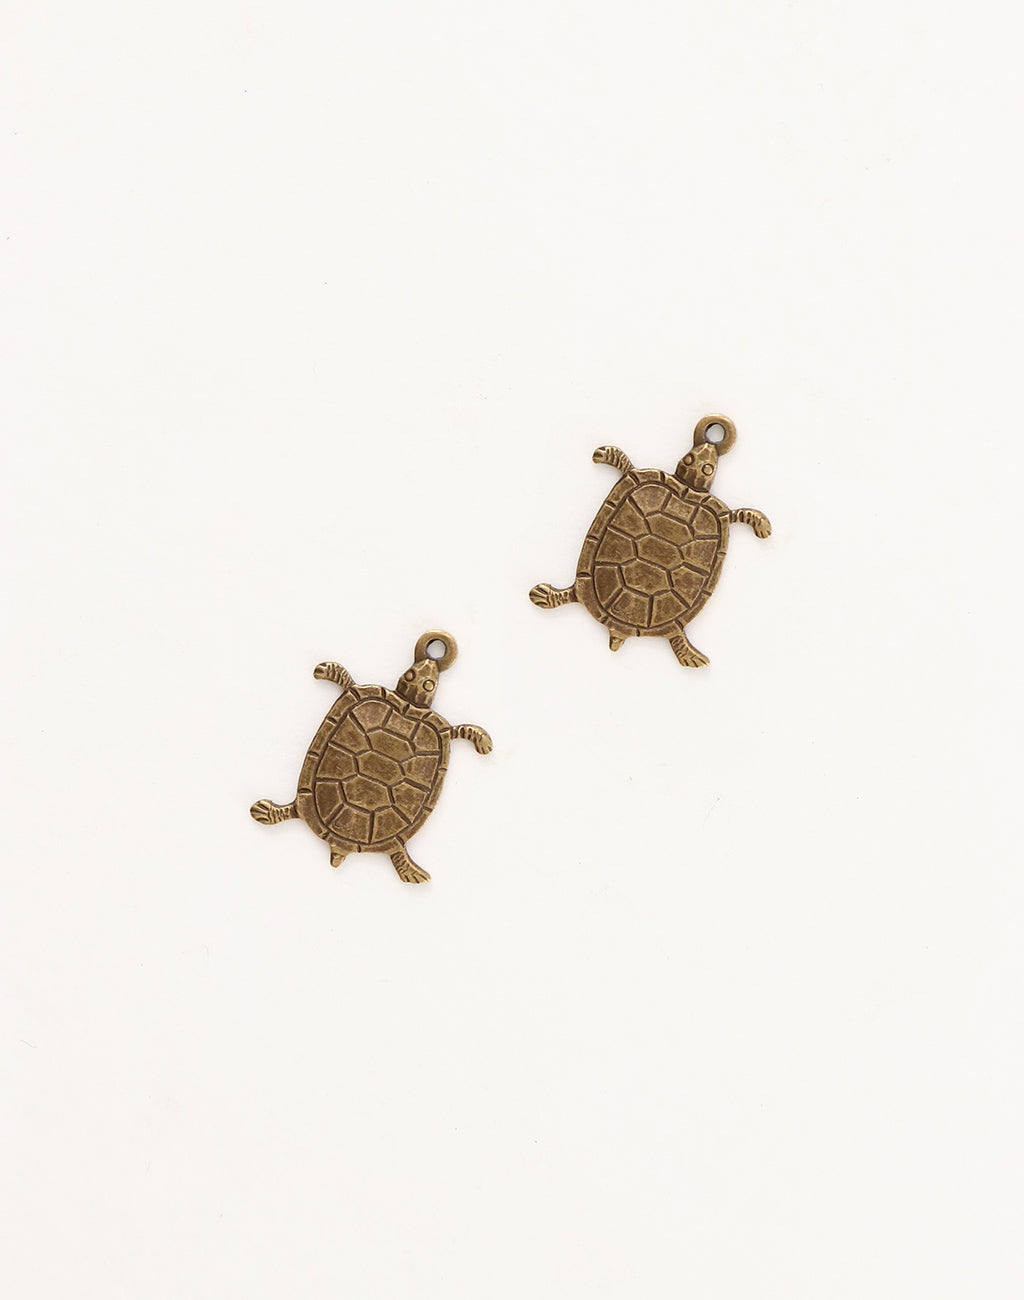 Turtle Charm, 17x13mm, (2pcs)